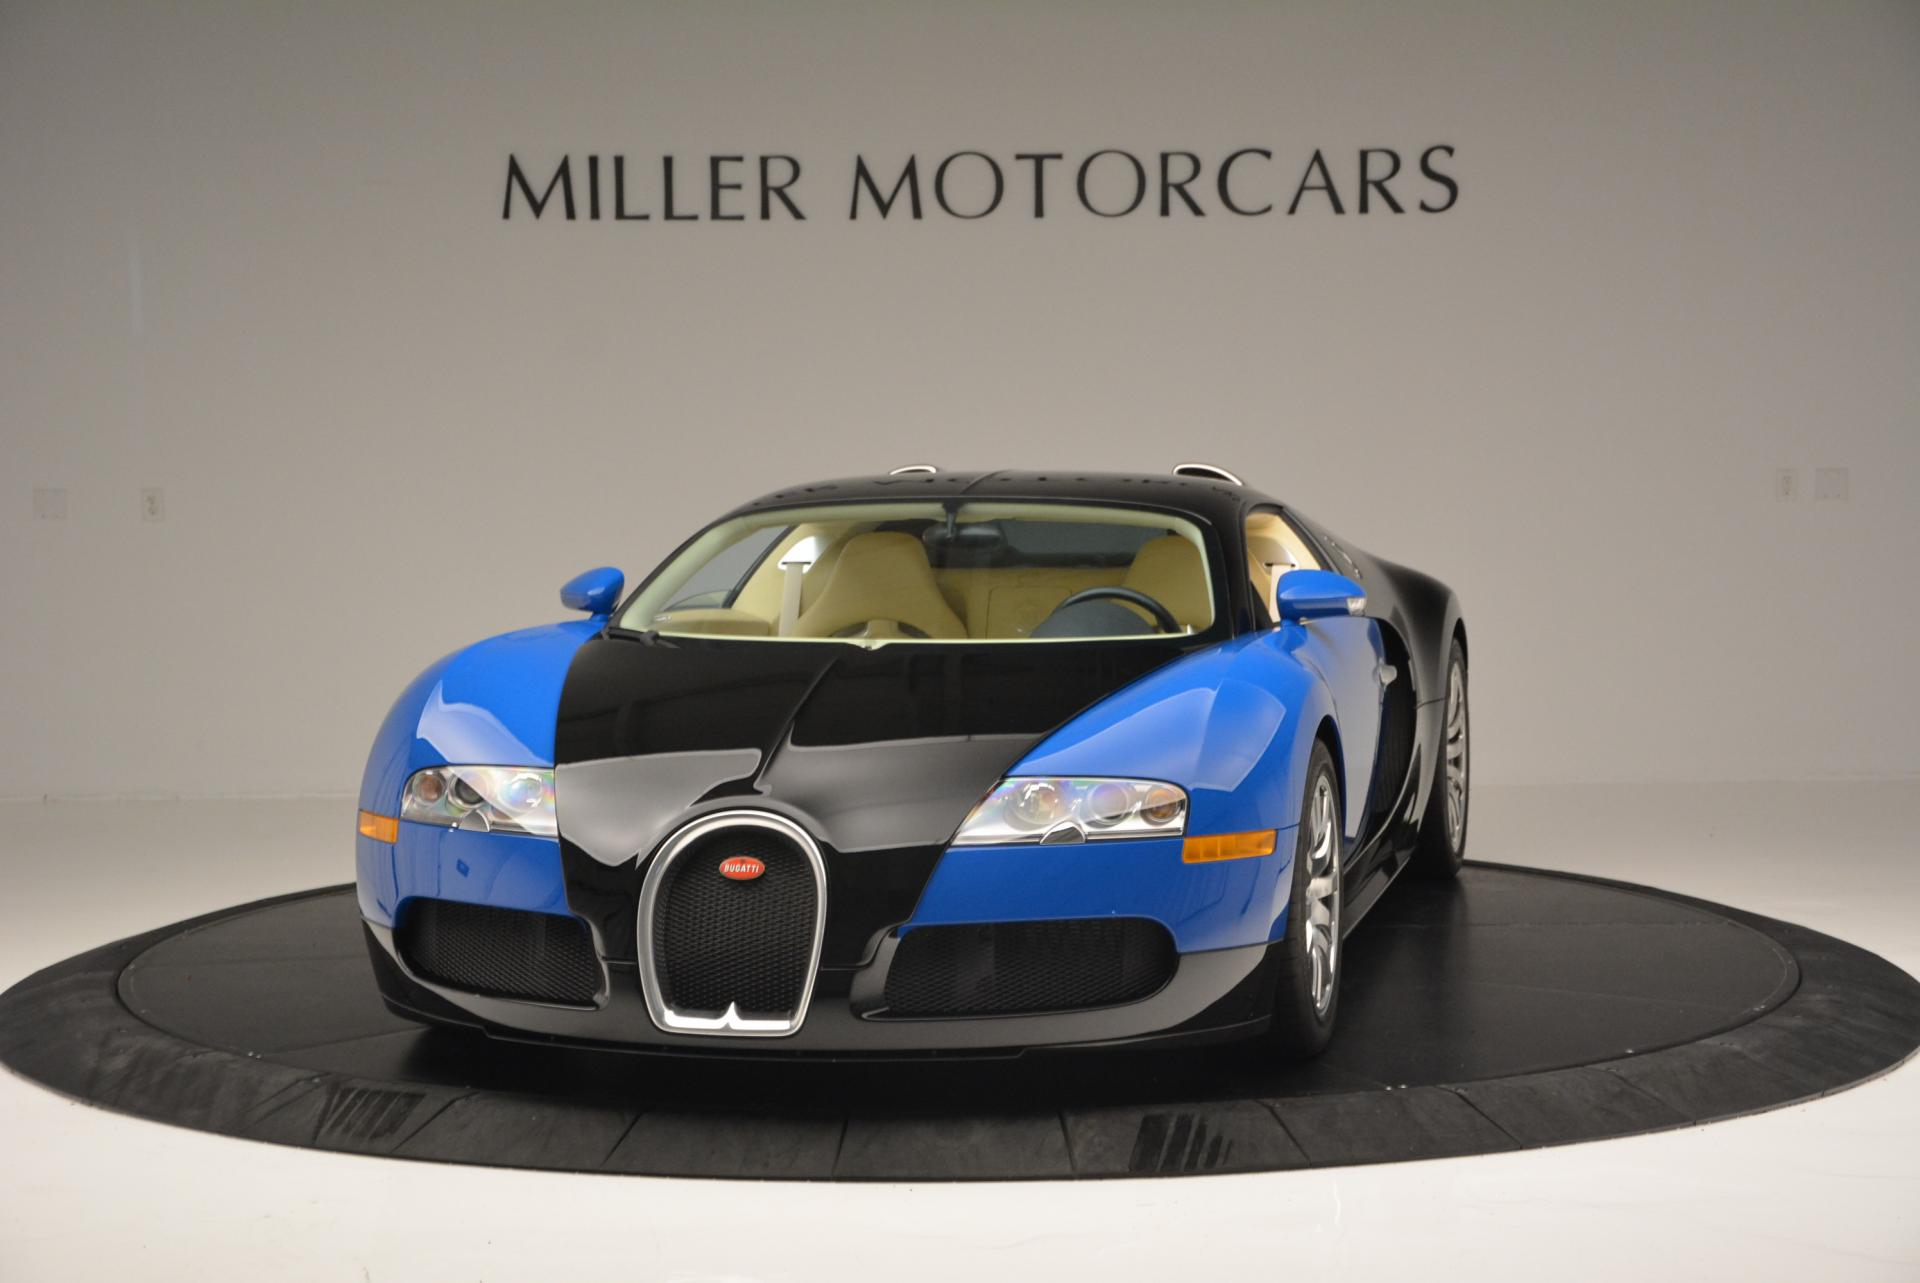 Used 2006 Bugatti Veyron 16.4 for sale Sold at Alfa Romeo of Westport in Westport CT 06880 1